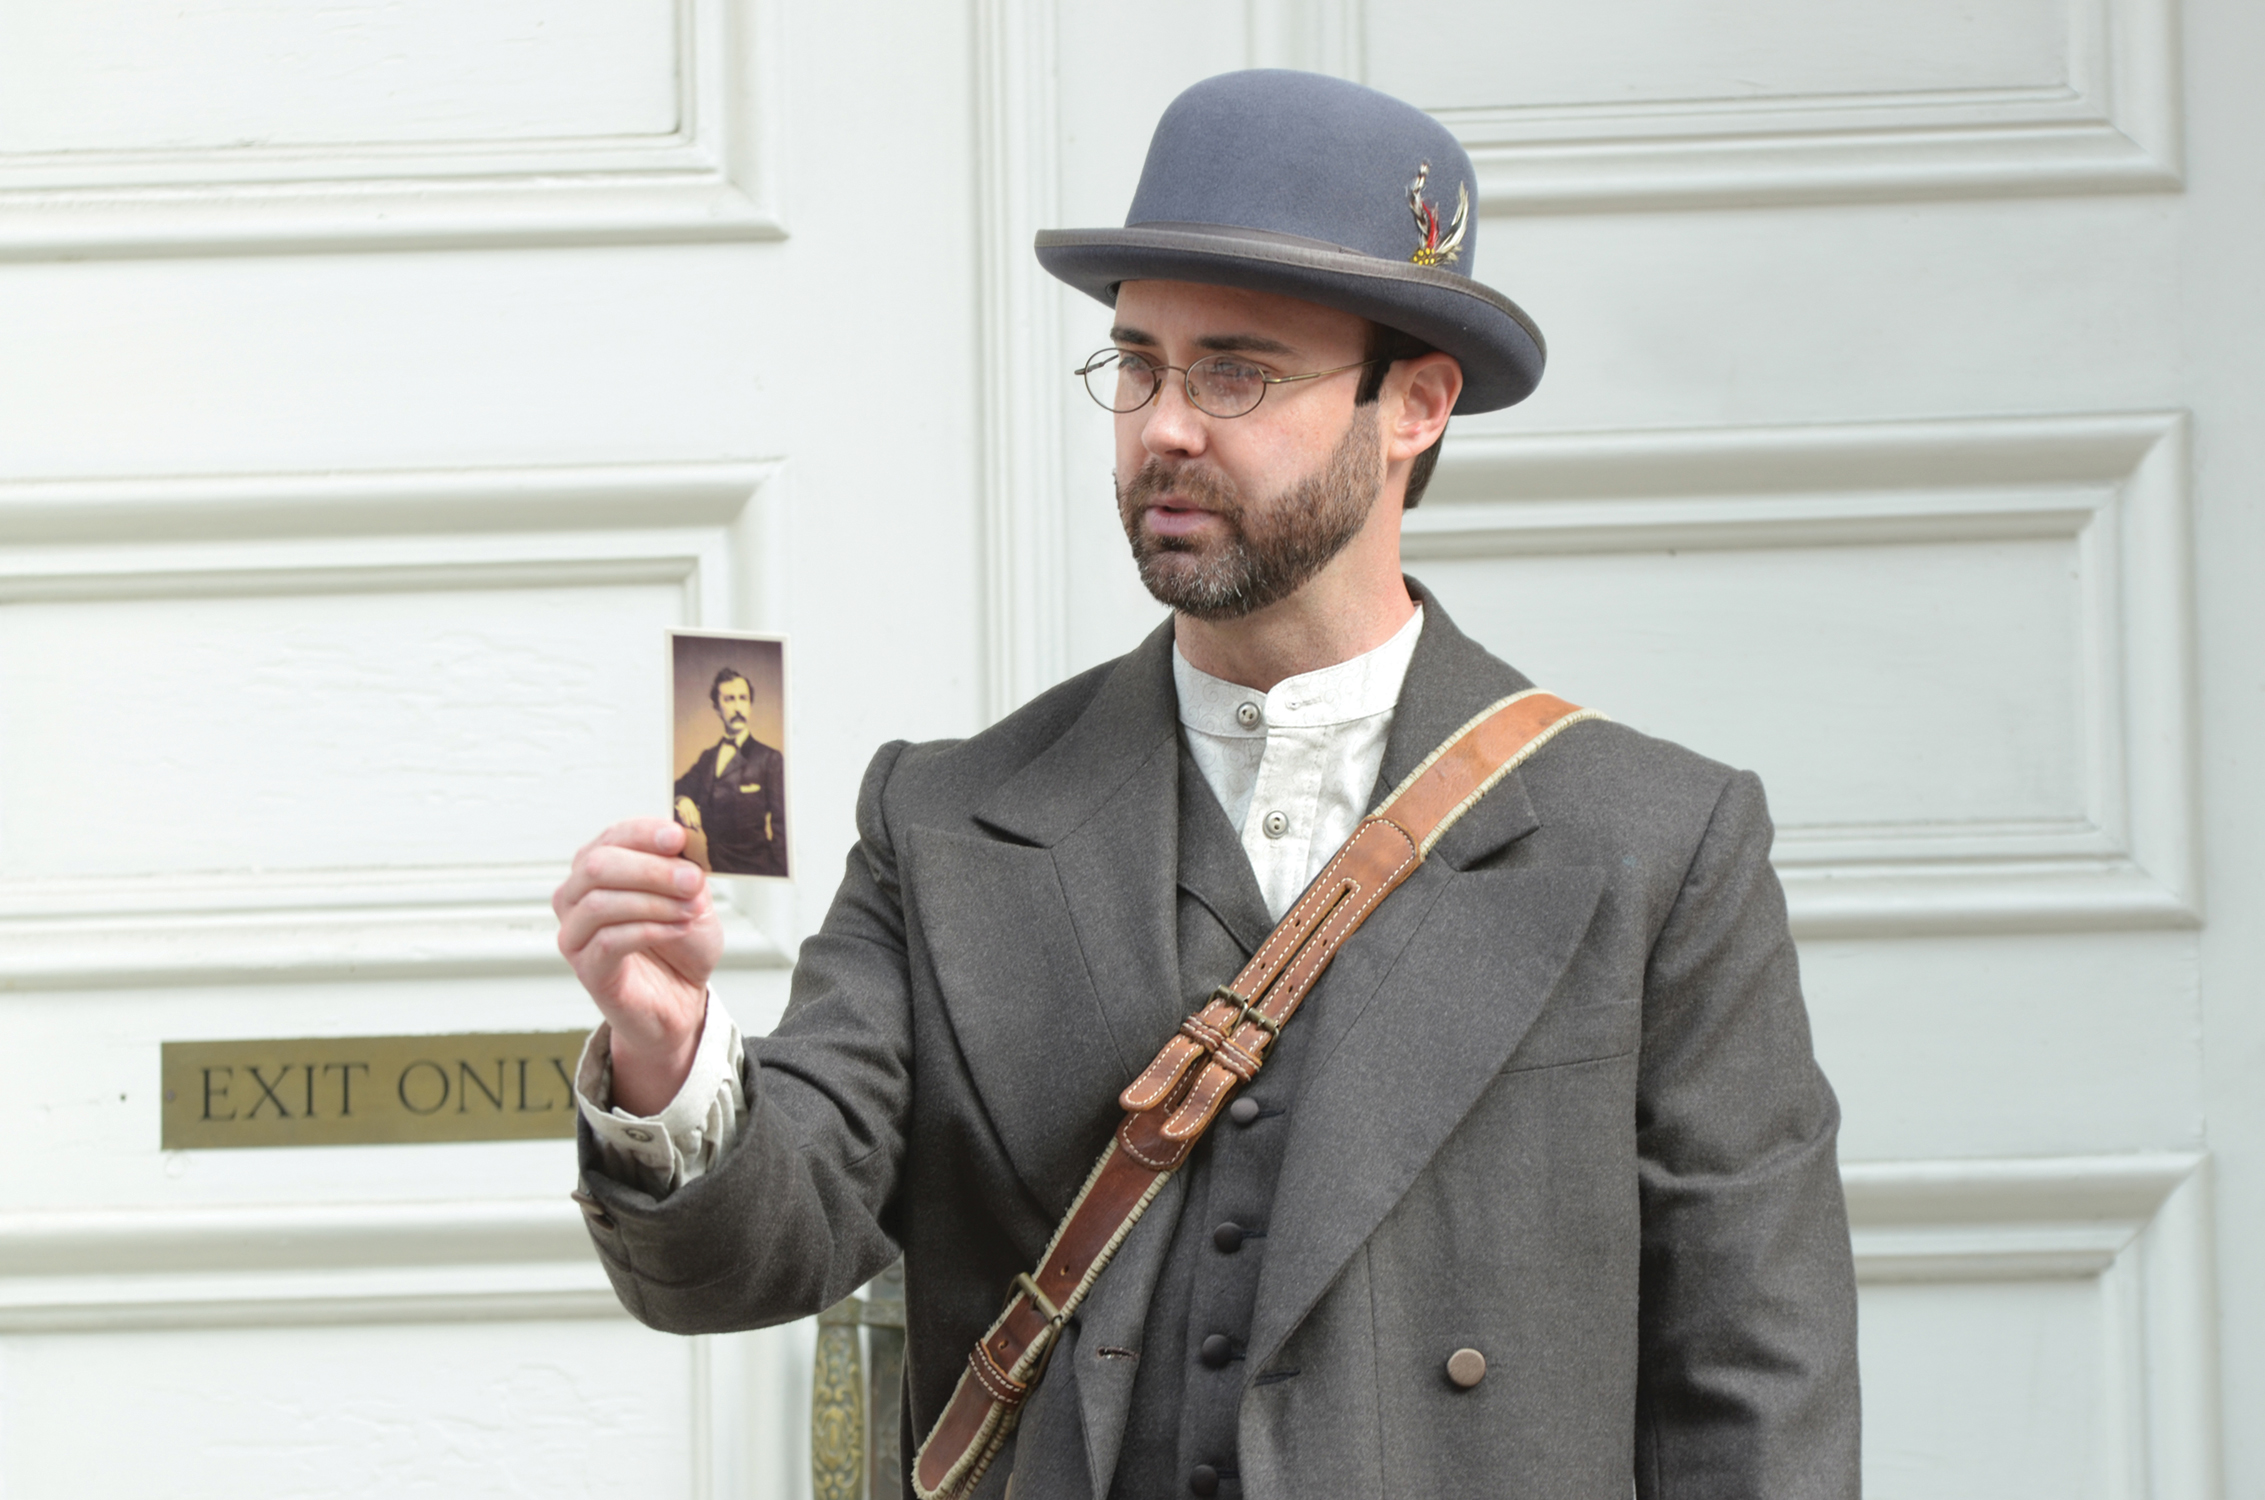 Actor William Diggle, dressed as Detective James McDevitt, holds a photo of assassin John Wilkes Booth as he leads a tour outside of Ford's Theatre.